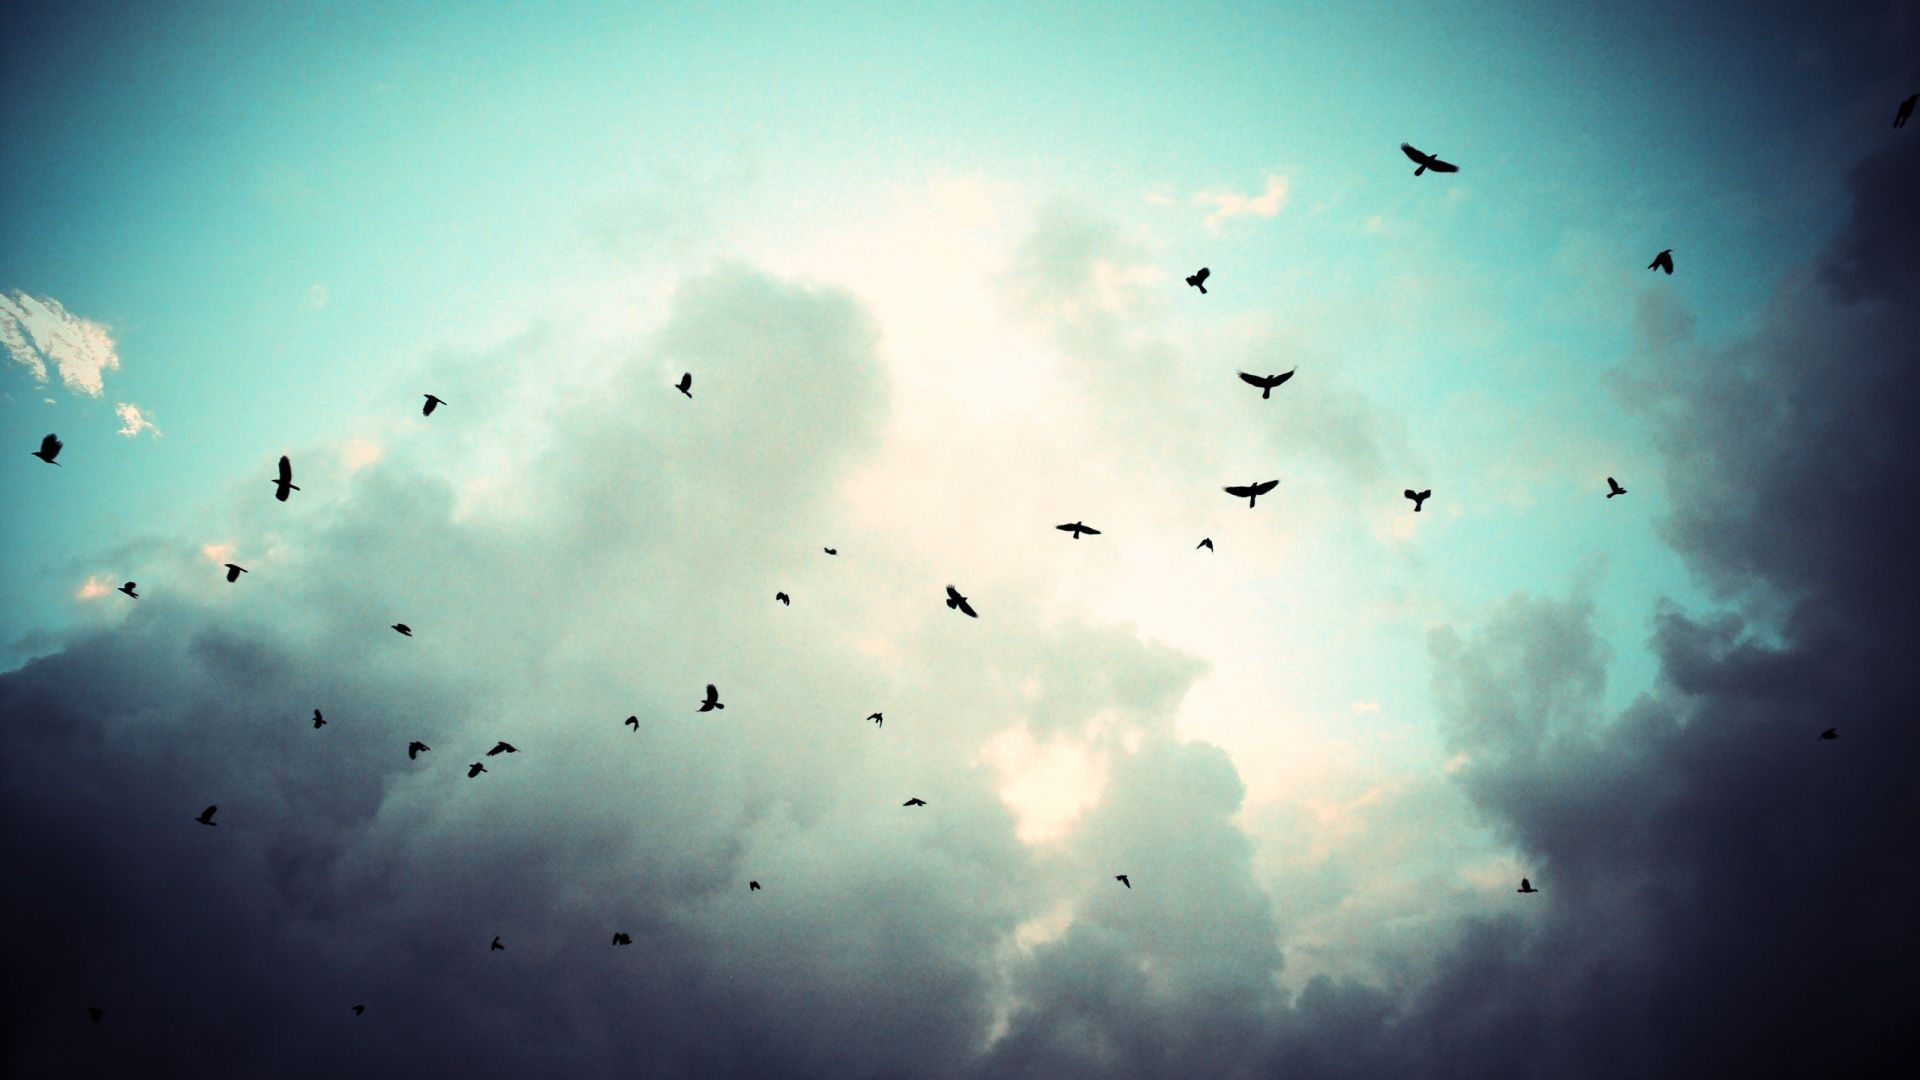 birds flying in cloudy sky hd wallpapers (With images